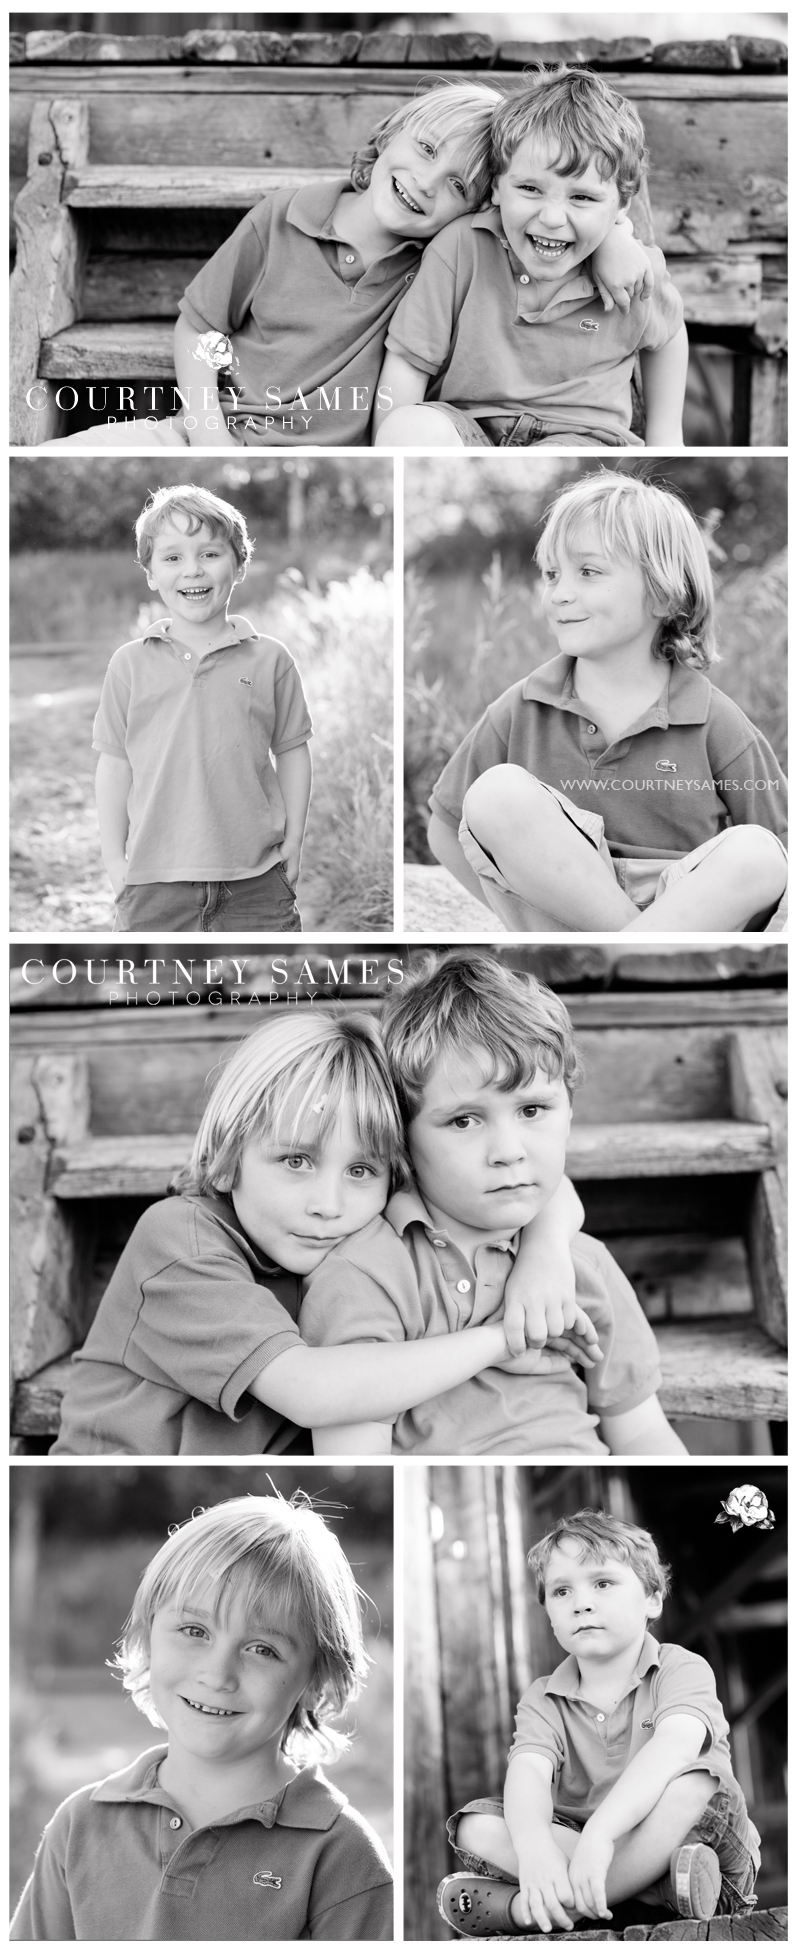 Austin & Aspen Children's Portrait Photographer